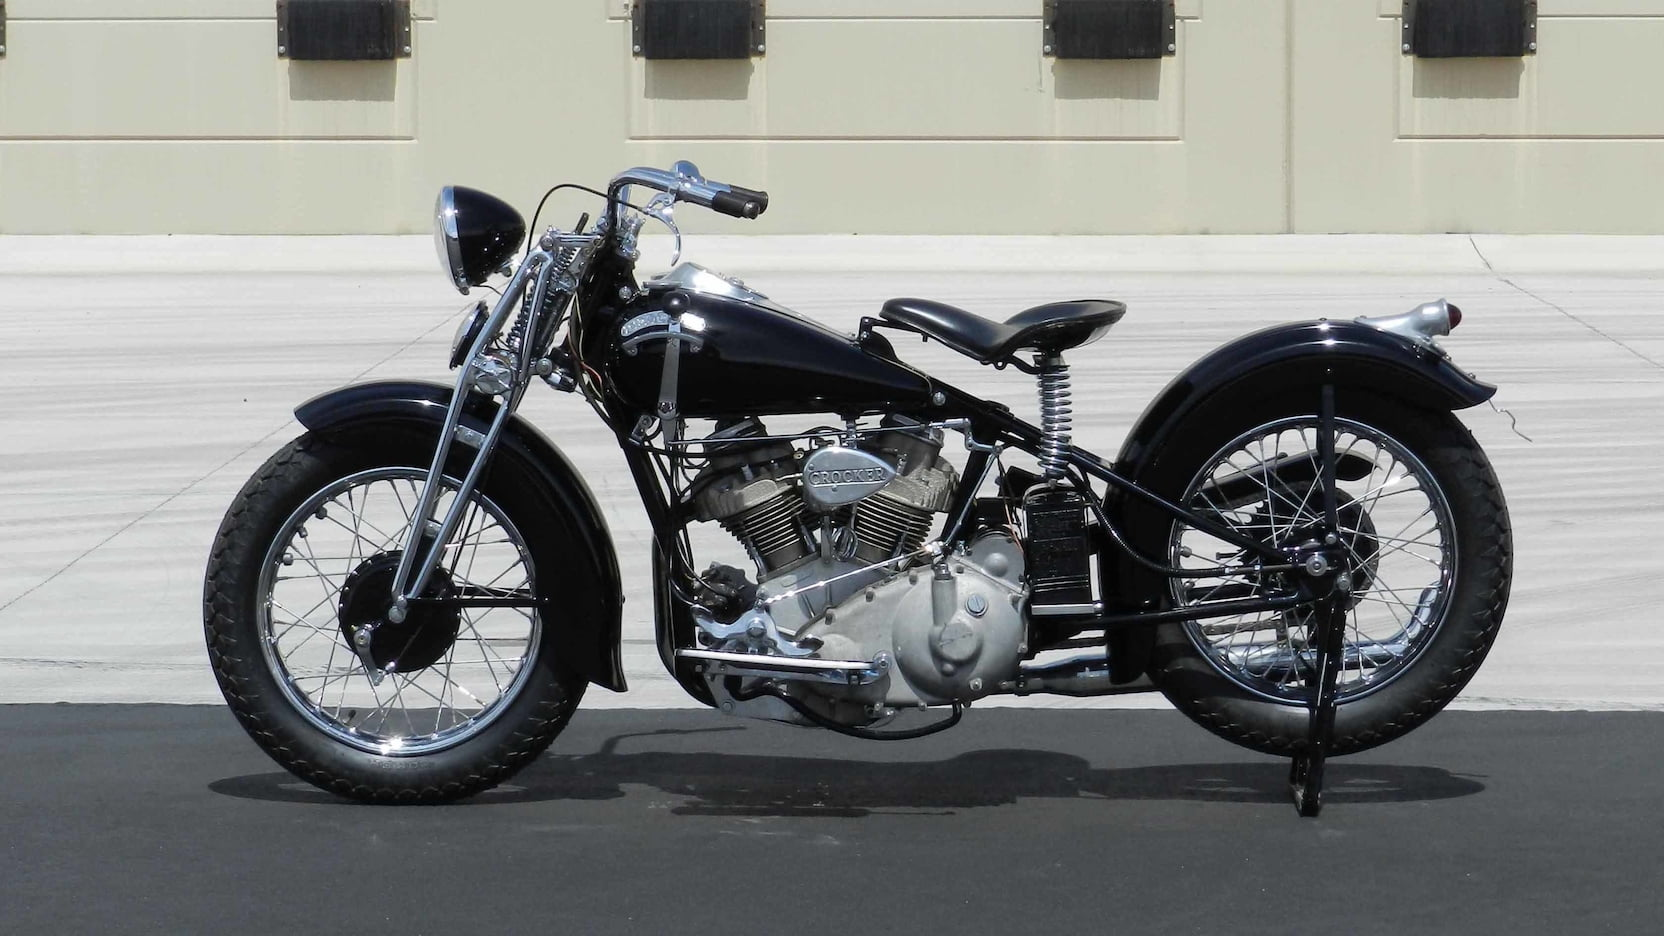 This Crocker motorcycle is worth 10 Harley-Davidsons. But why? thumbnail